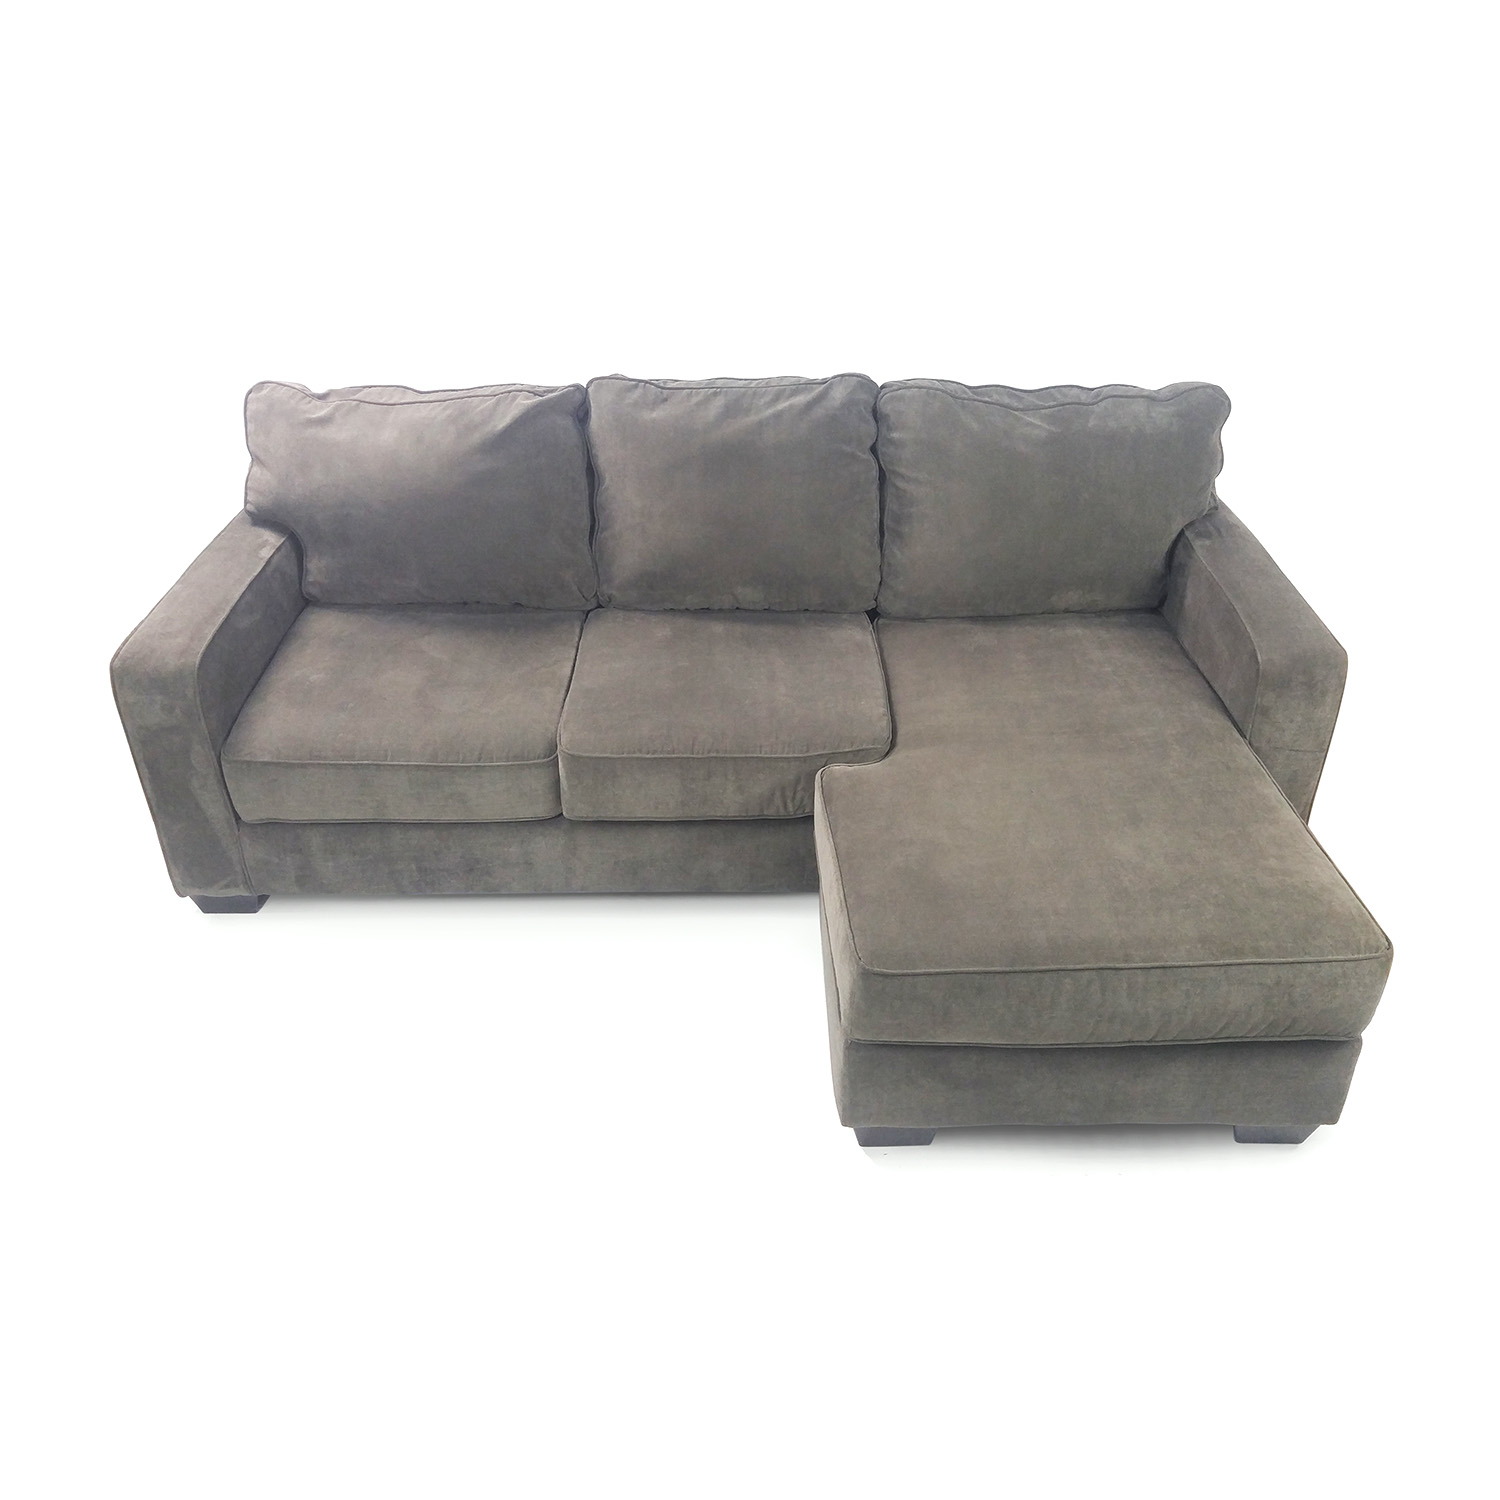 hodan sofa chaise ashley furniture hodan marble sofa